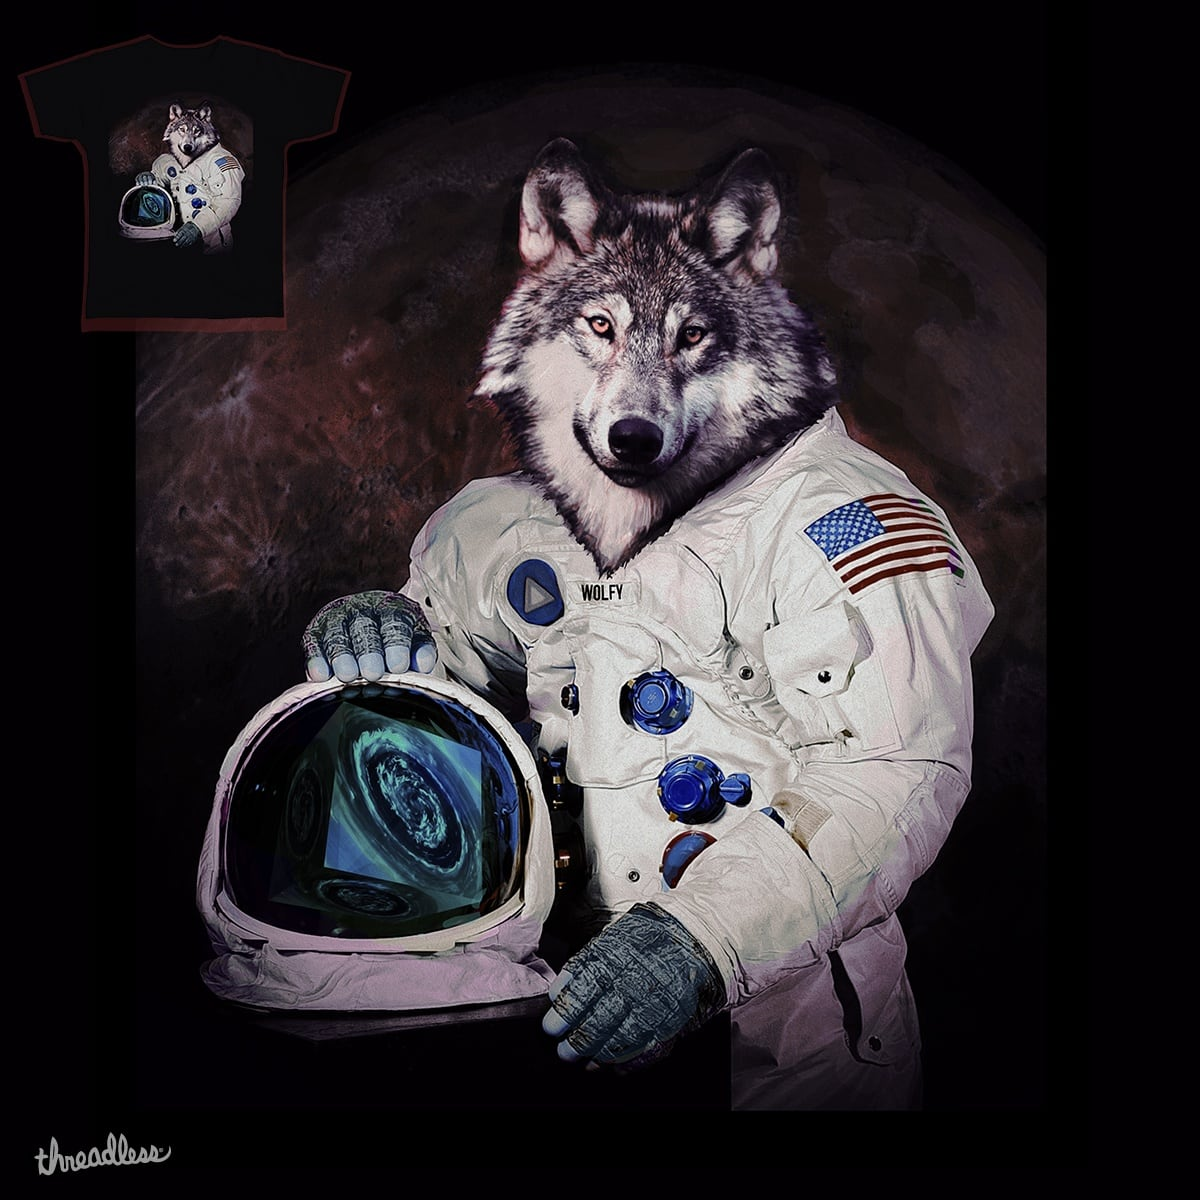 Wolfy Goes to Mars by Thomas Orrow on Threadless